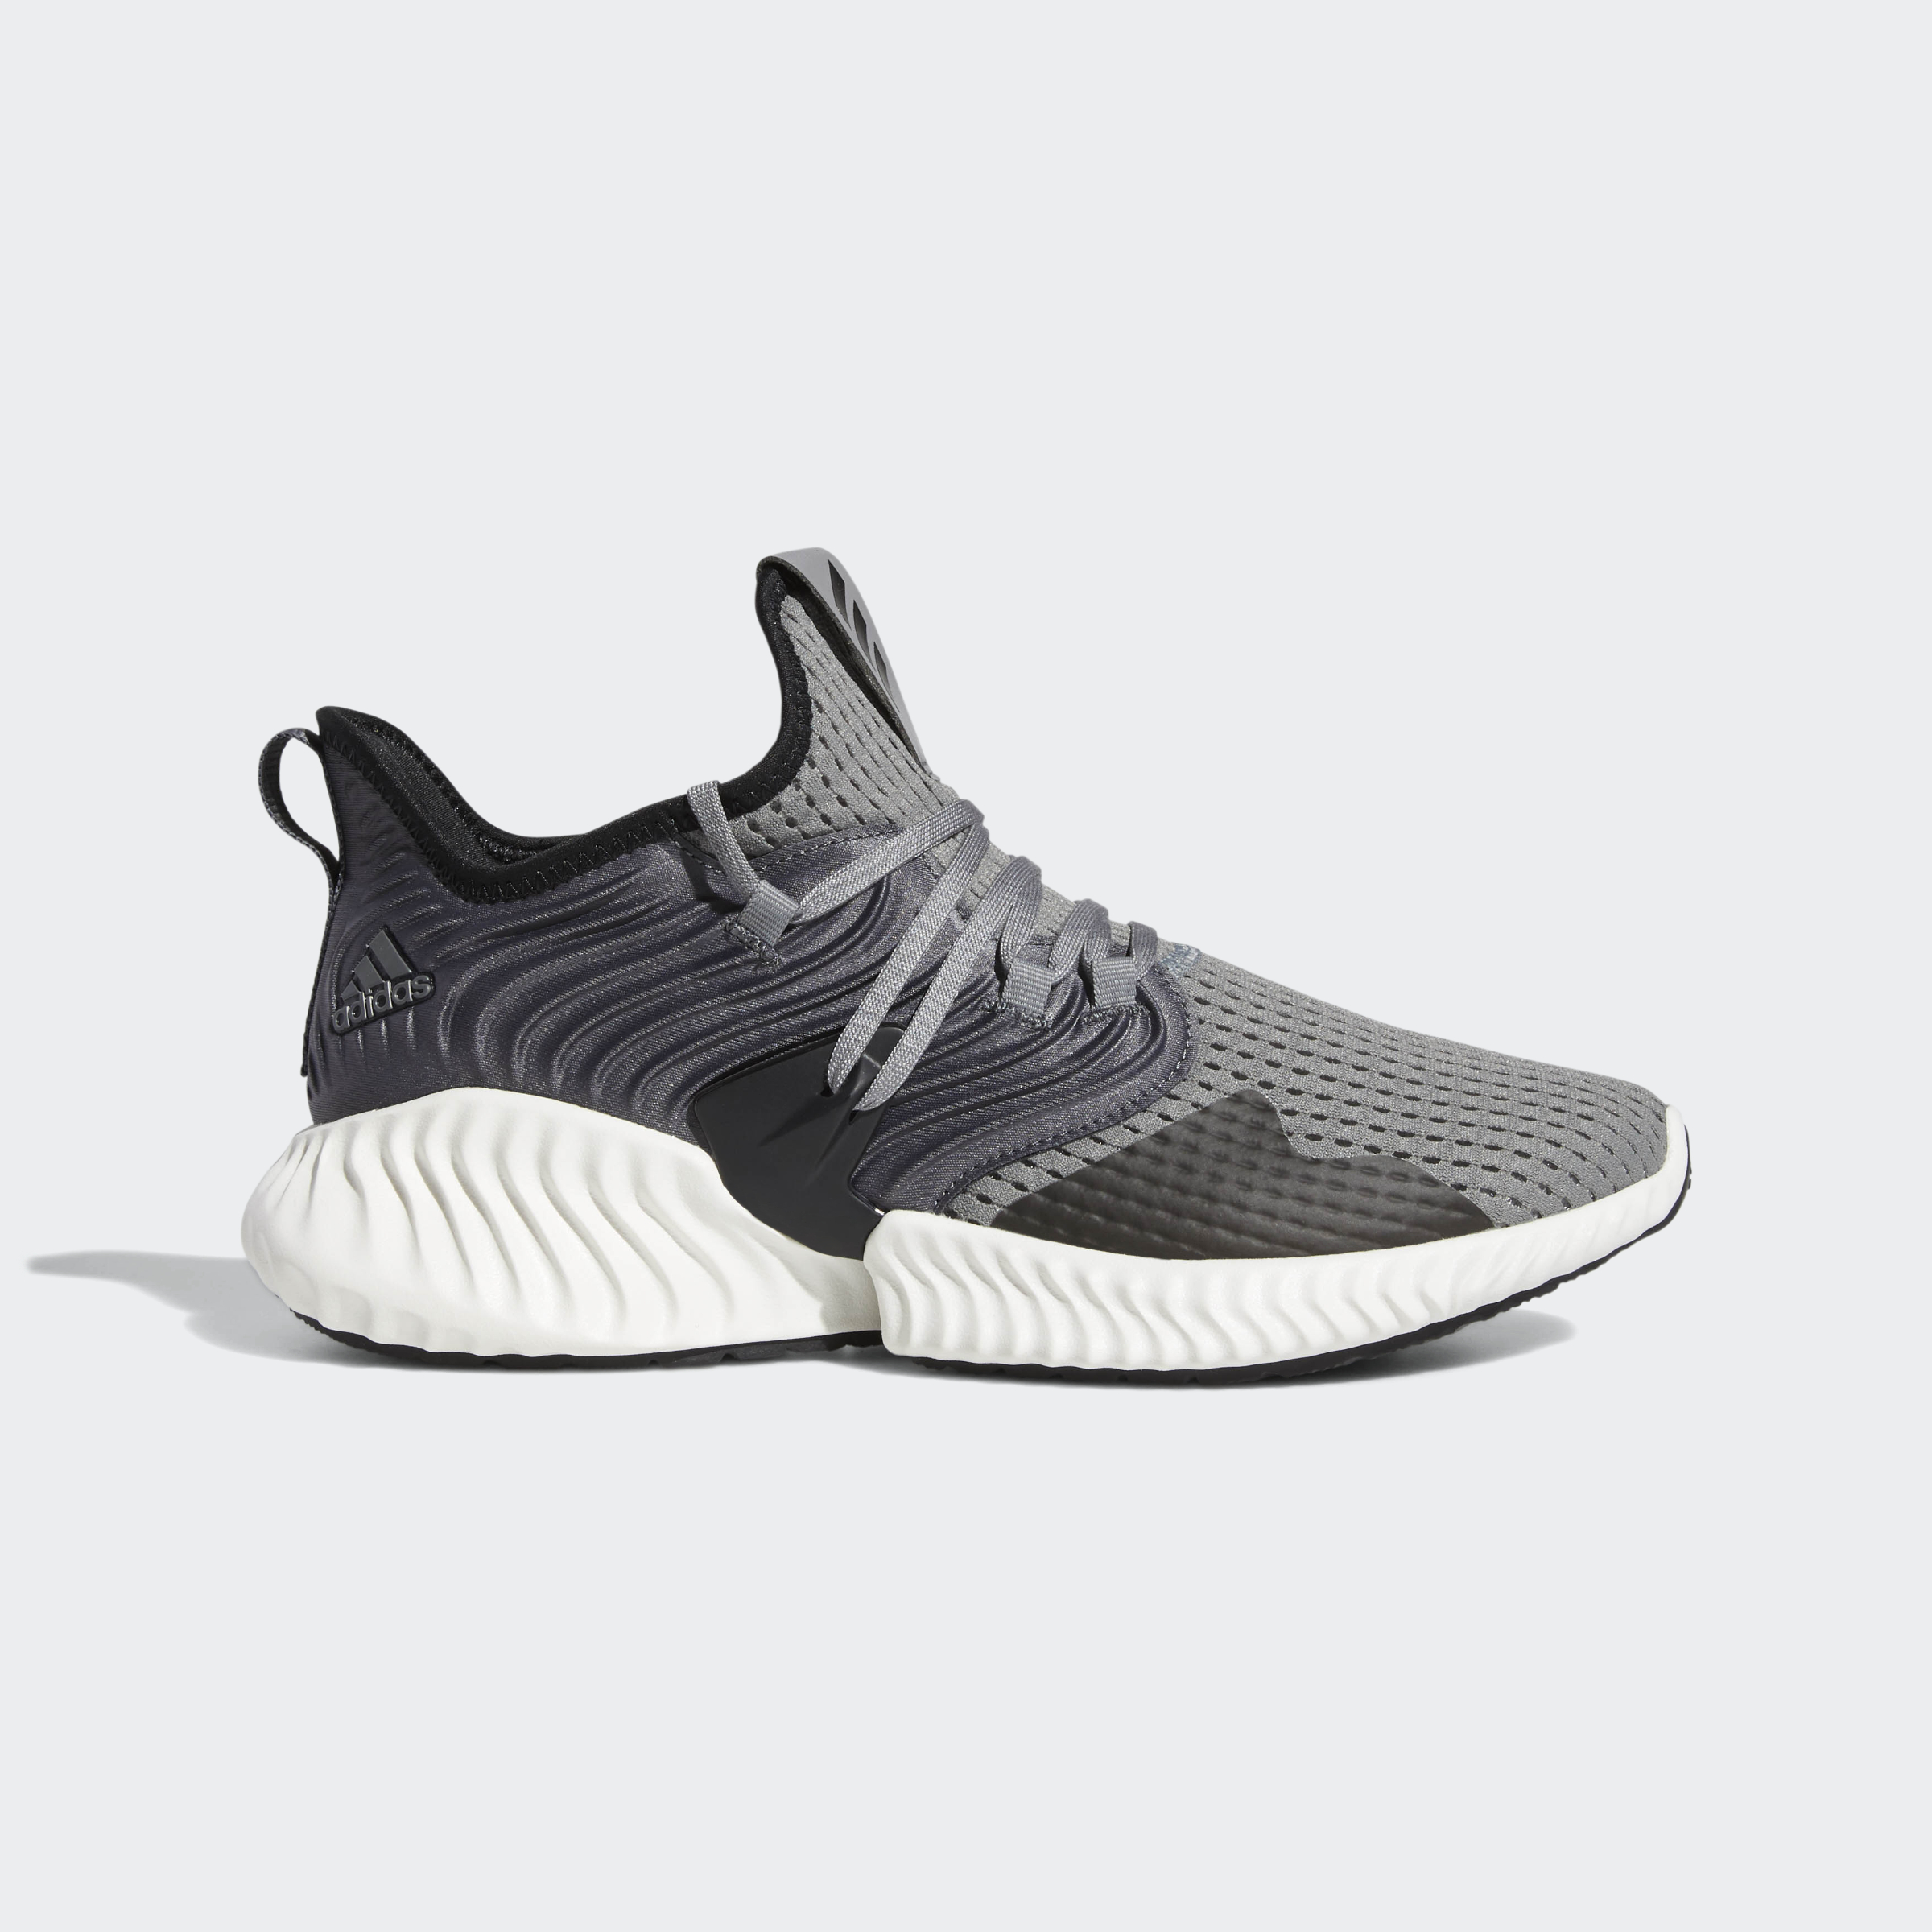 adidas-Alphabounce-Instinct-Clima-Shoes-Men-039-s-Athletic-amp-Sneakers miniature 12